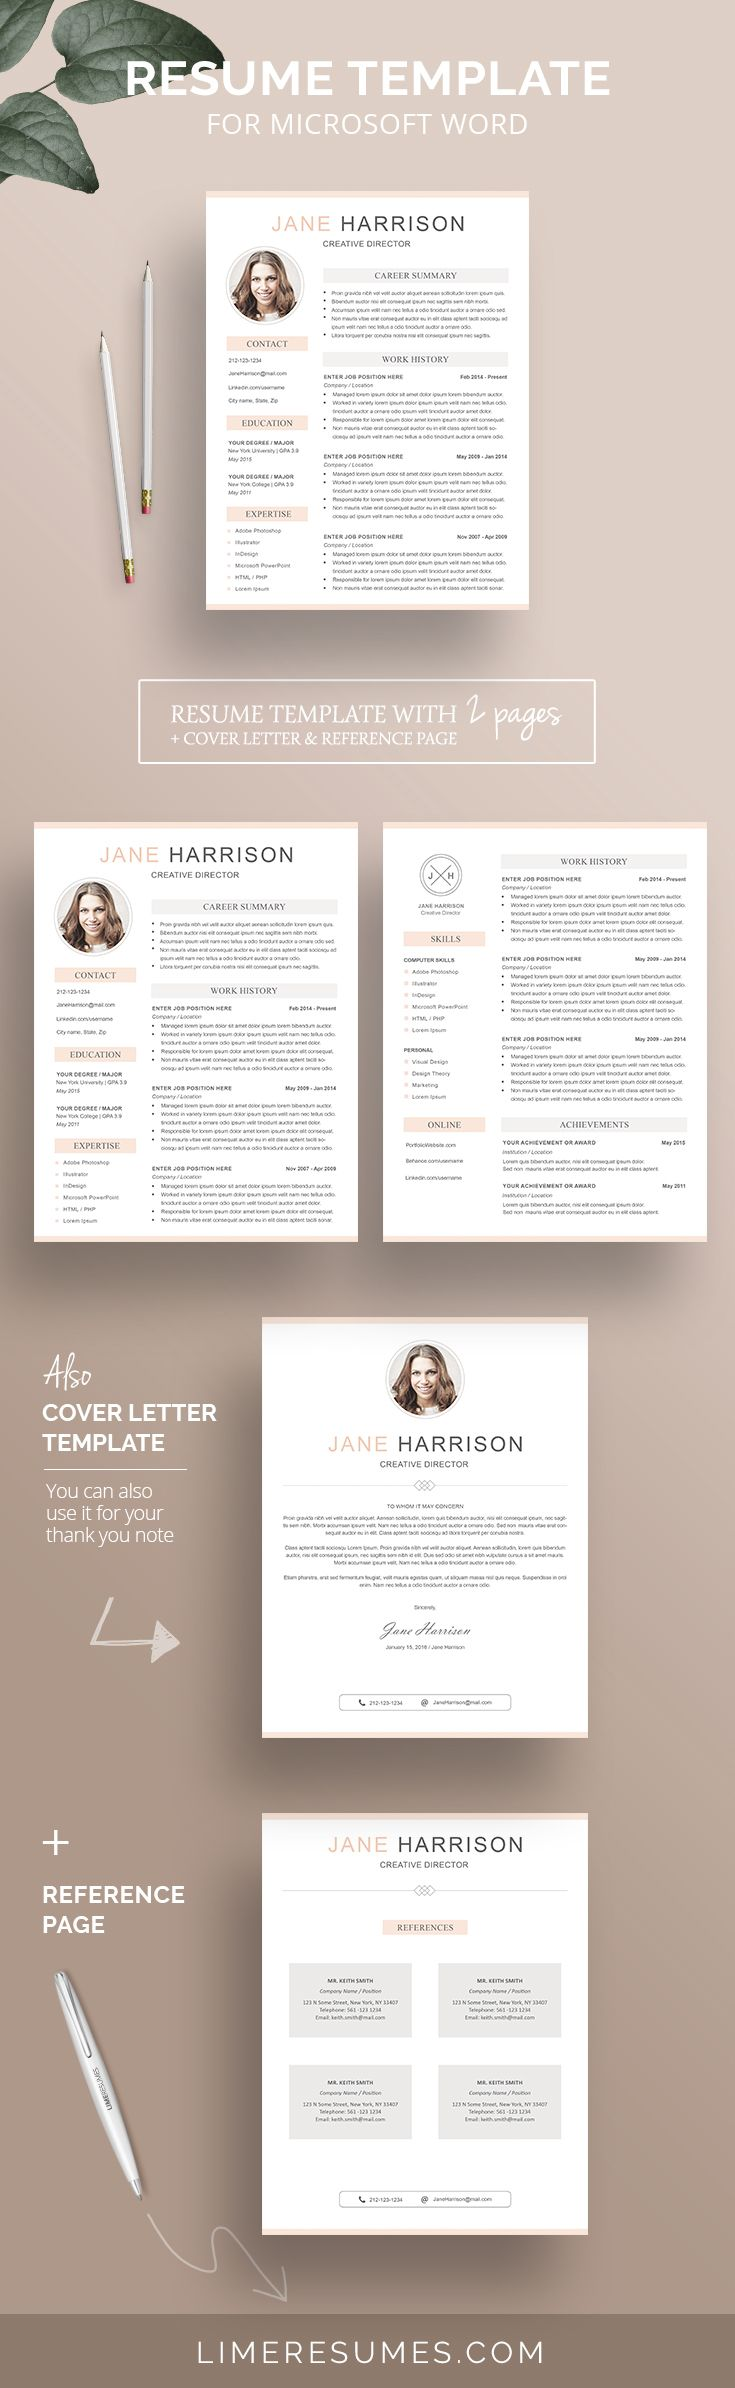 Modern Resume Template Resume Template With Photo  Photo Resume With 2 Pages  Modern